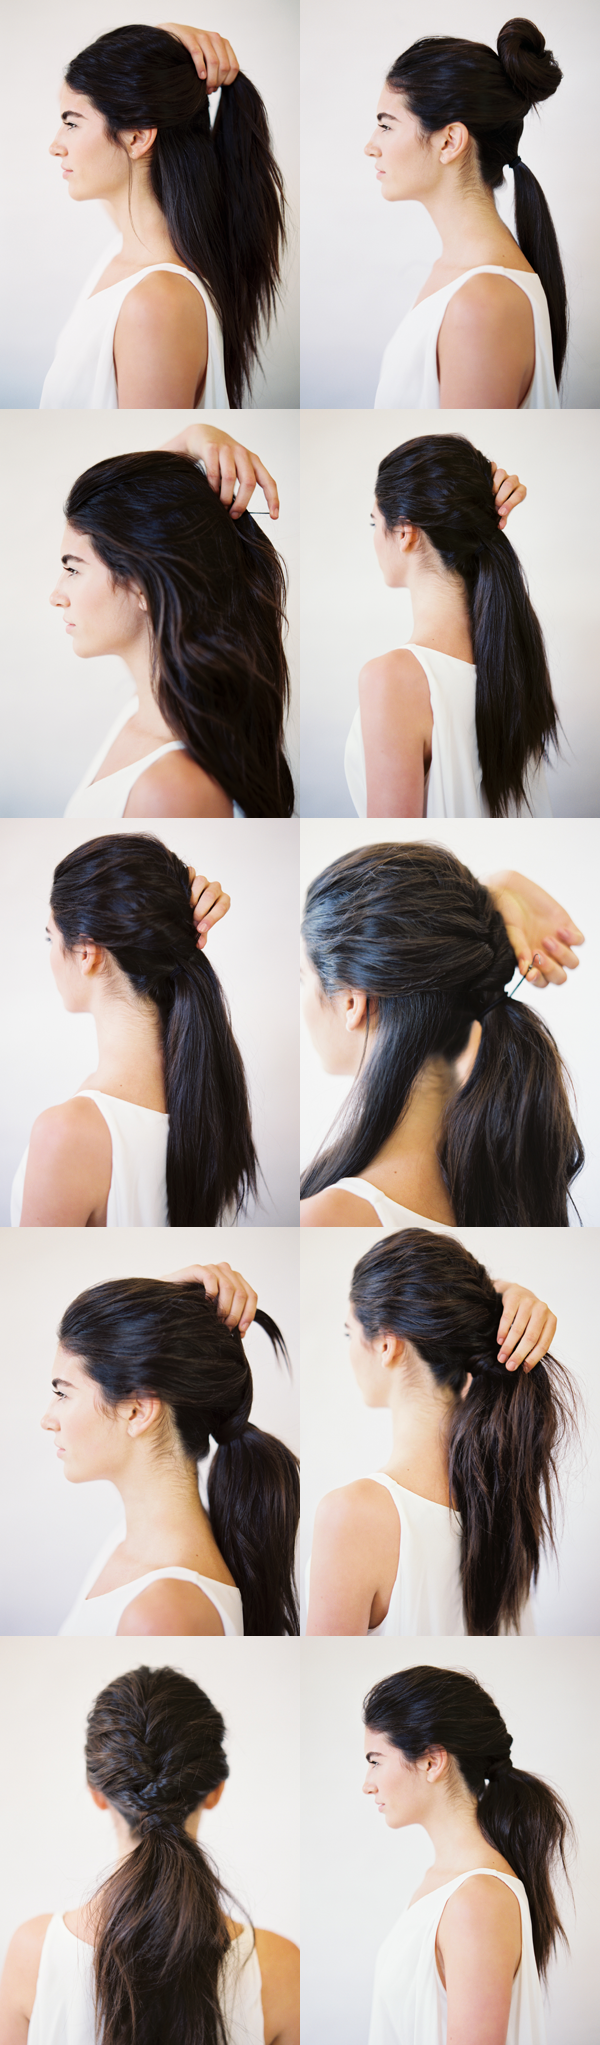 diy-layered-ponytail-tutorial-steps